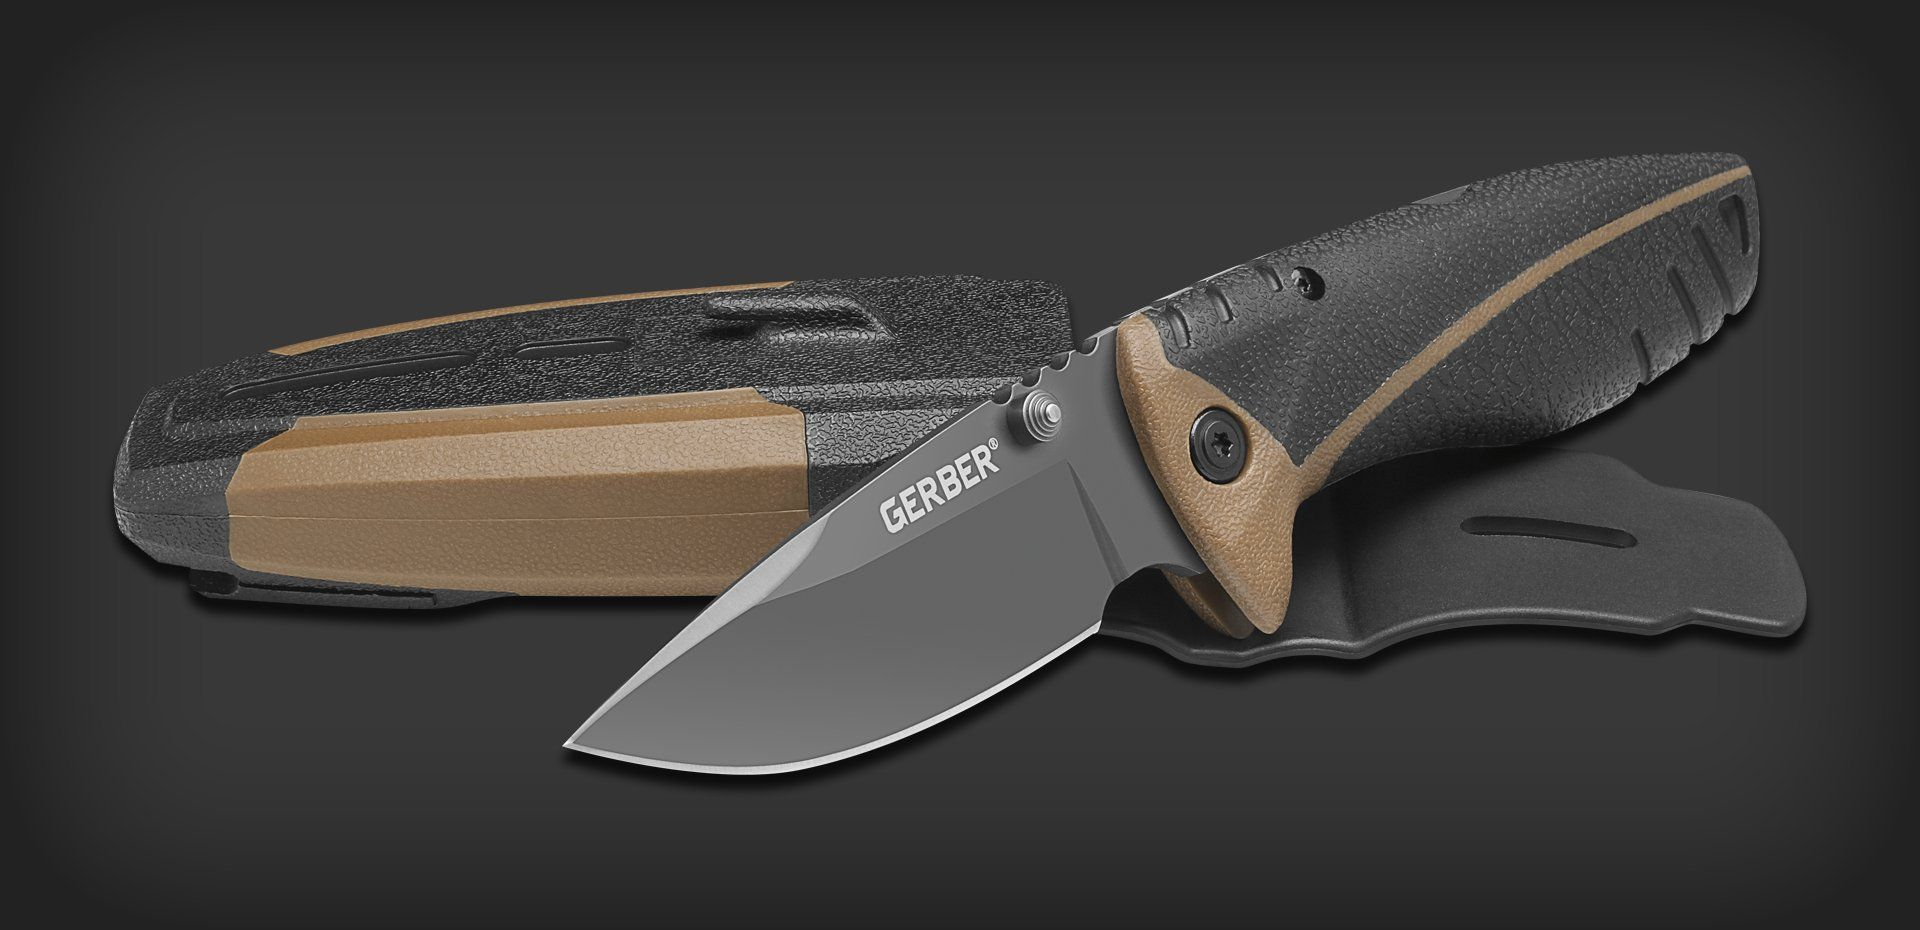 This quiet, lightweight Folding Sheath Knife is built with an aggressive handle design and drop point, high carbon stainless steel blade. The Myth™ Folding Sheath Knife's comfortable, soft rubberized handle offers a secure grip no matter the hunting conditions. Housed in a low-profile hard plastic sheath complete with a built-in carbide sharpener for sharpening on the go. This is the complete package for the modern hunter.Specifications:Item